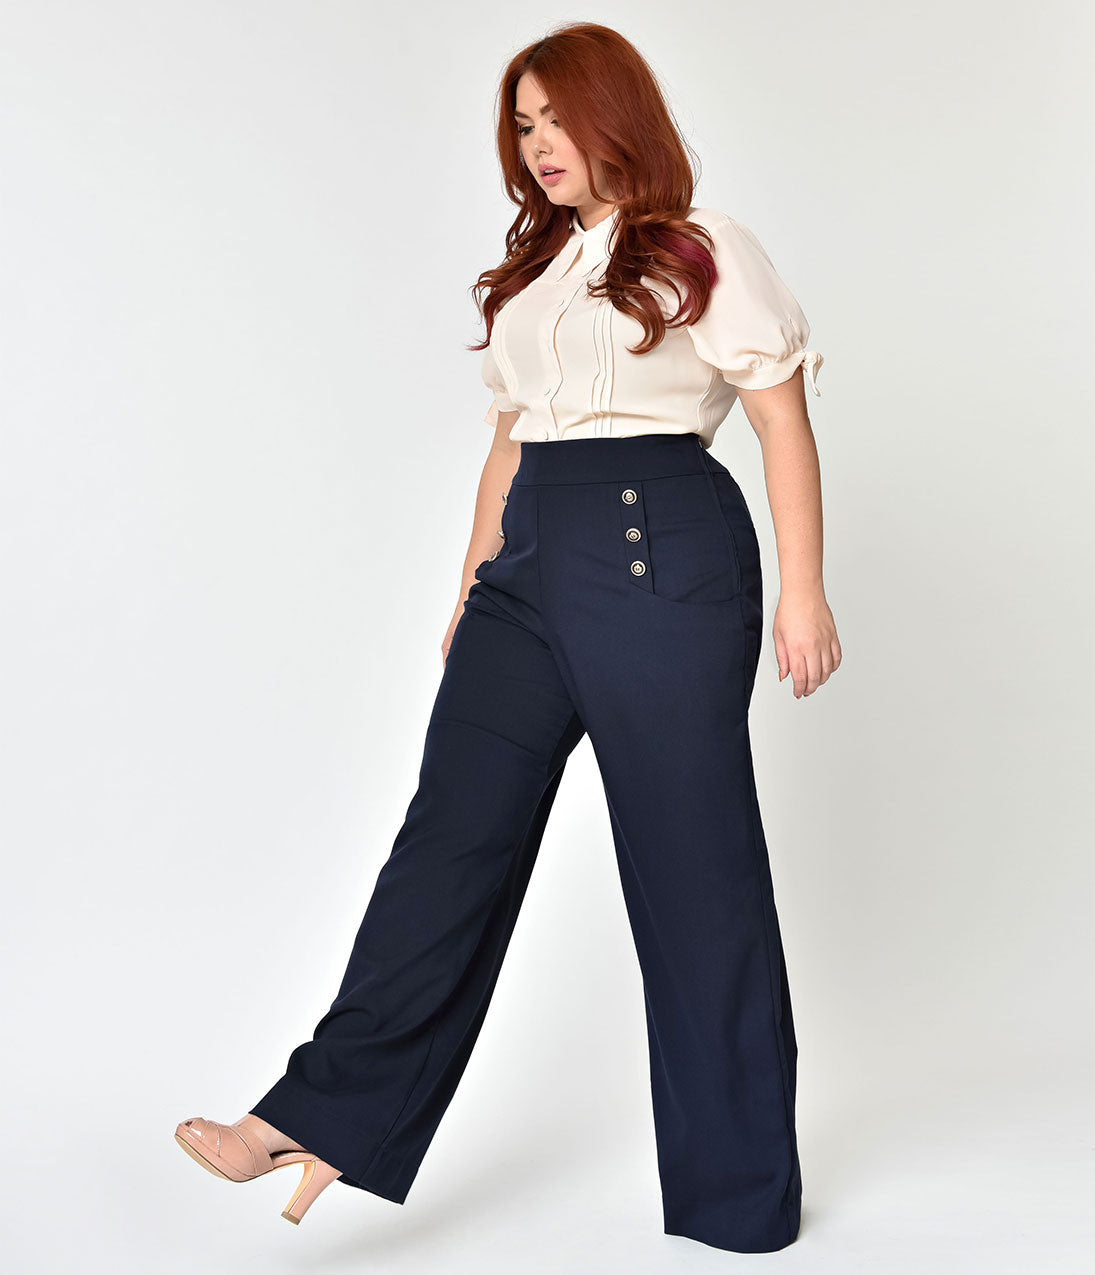 a9c55d92696 Unique Vintage Plus Size 1940s Style Midnight Blue High Waist Sailor Ginger  Pants